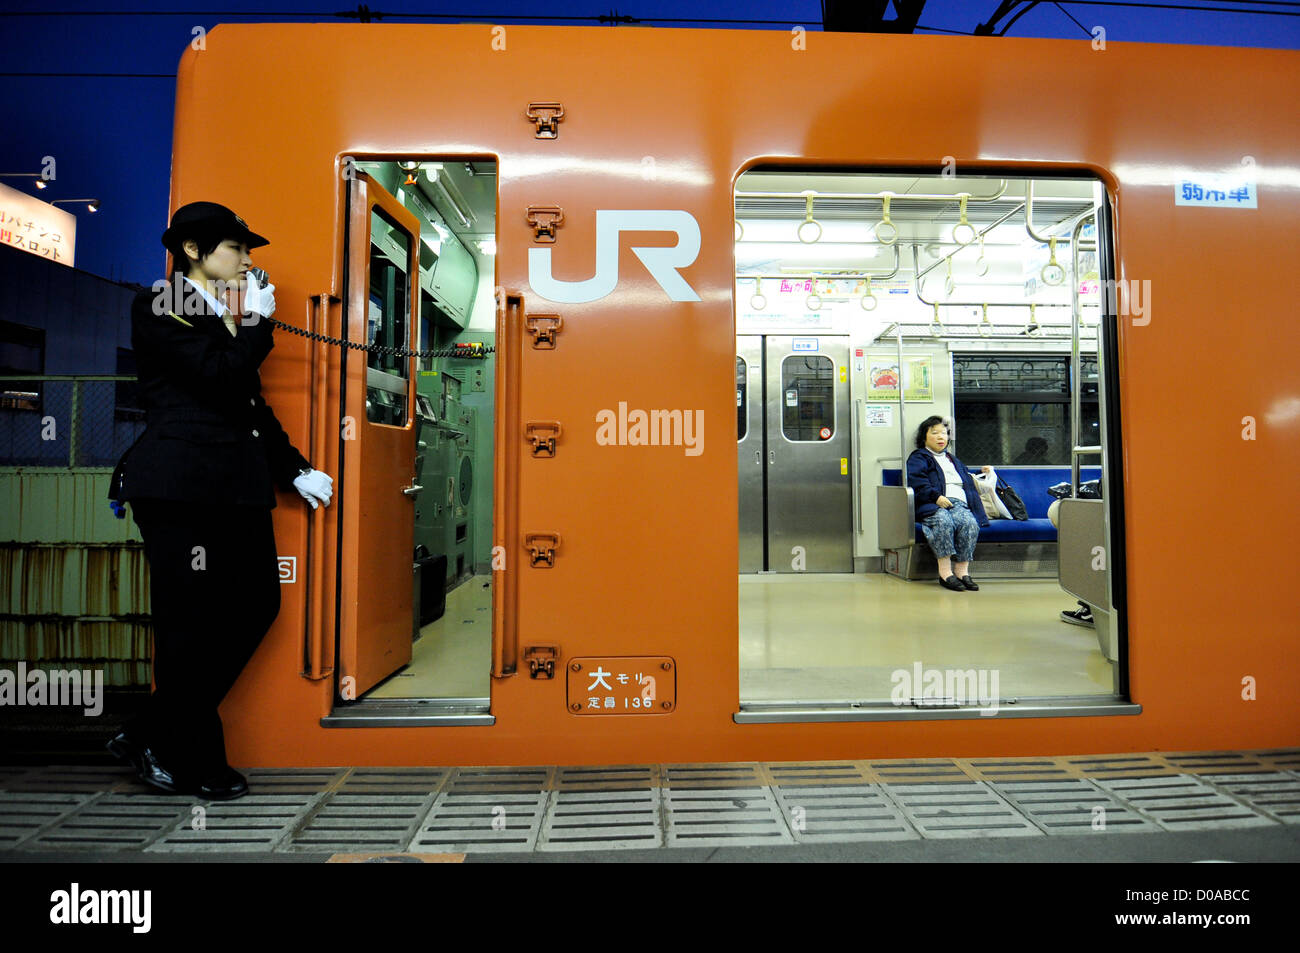 A 103 Series train on Osaka's loop line. The 103 series was retired from the loop line on 3rd October, 2017. - Stock Image